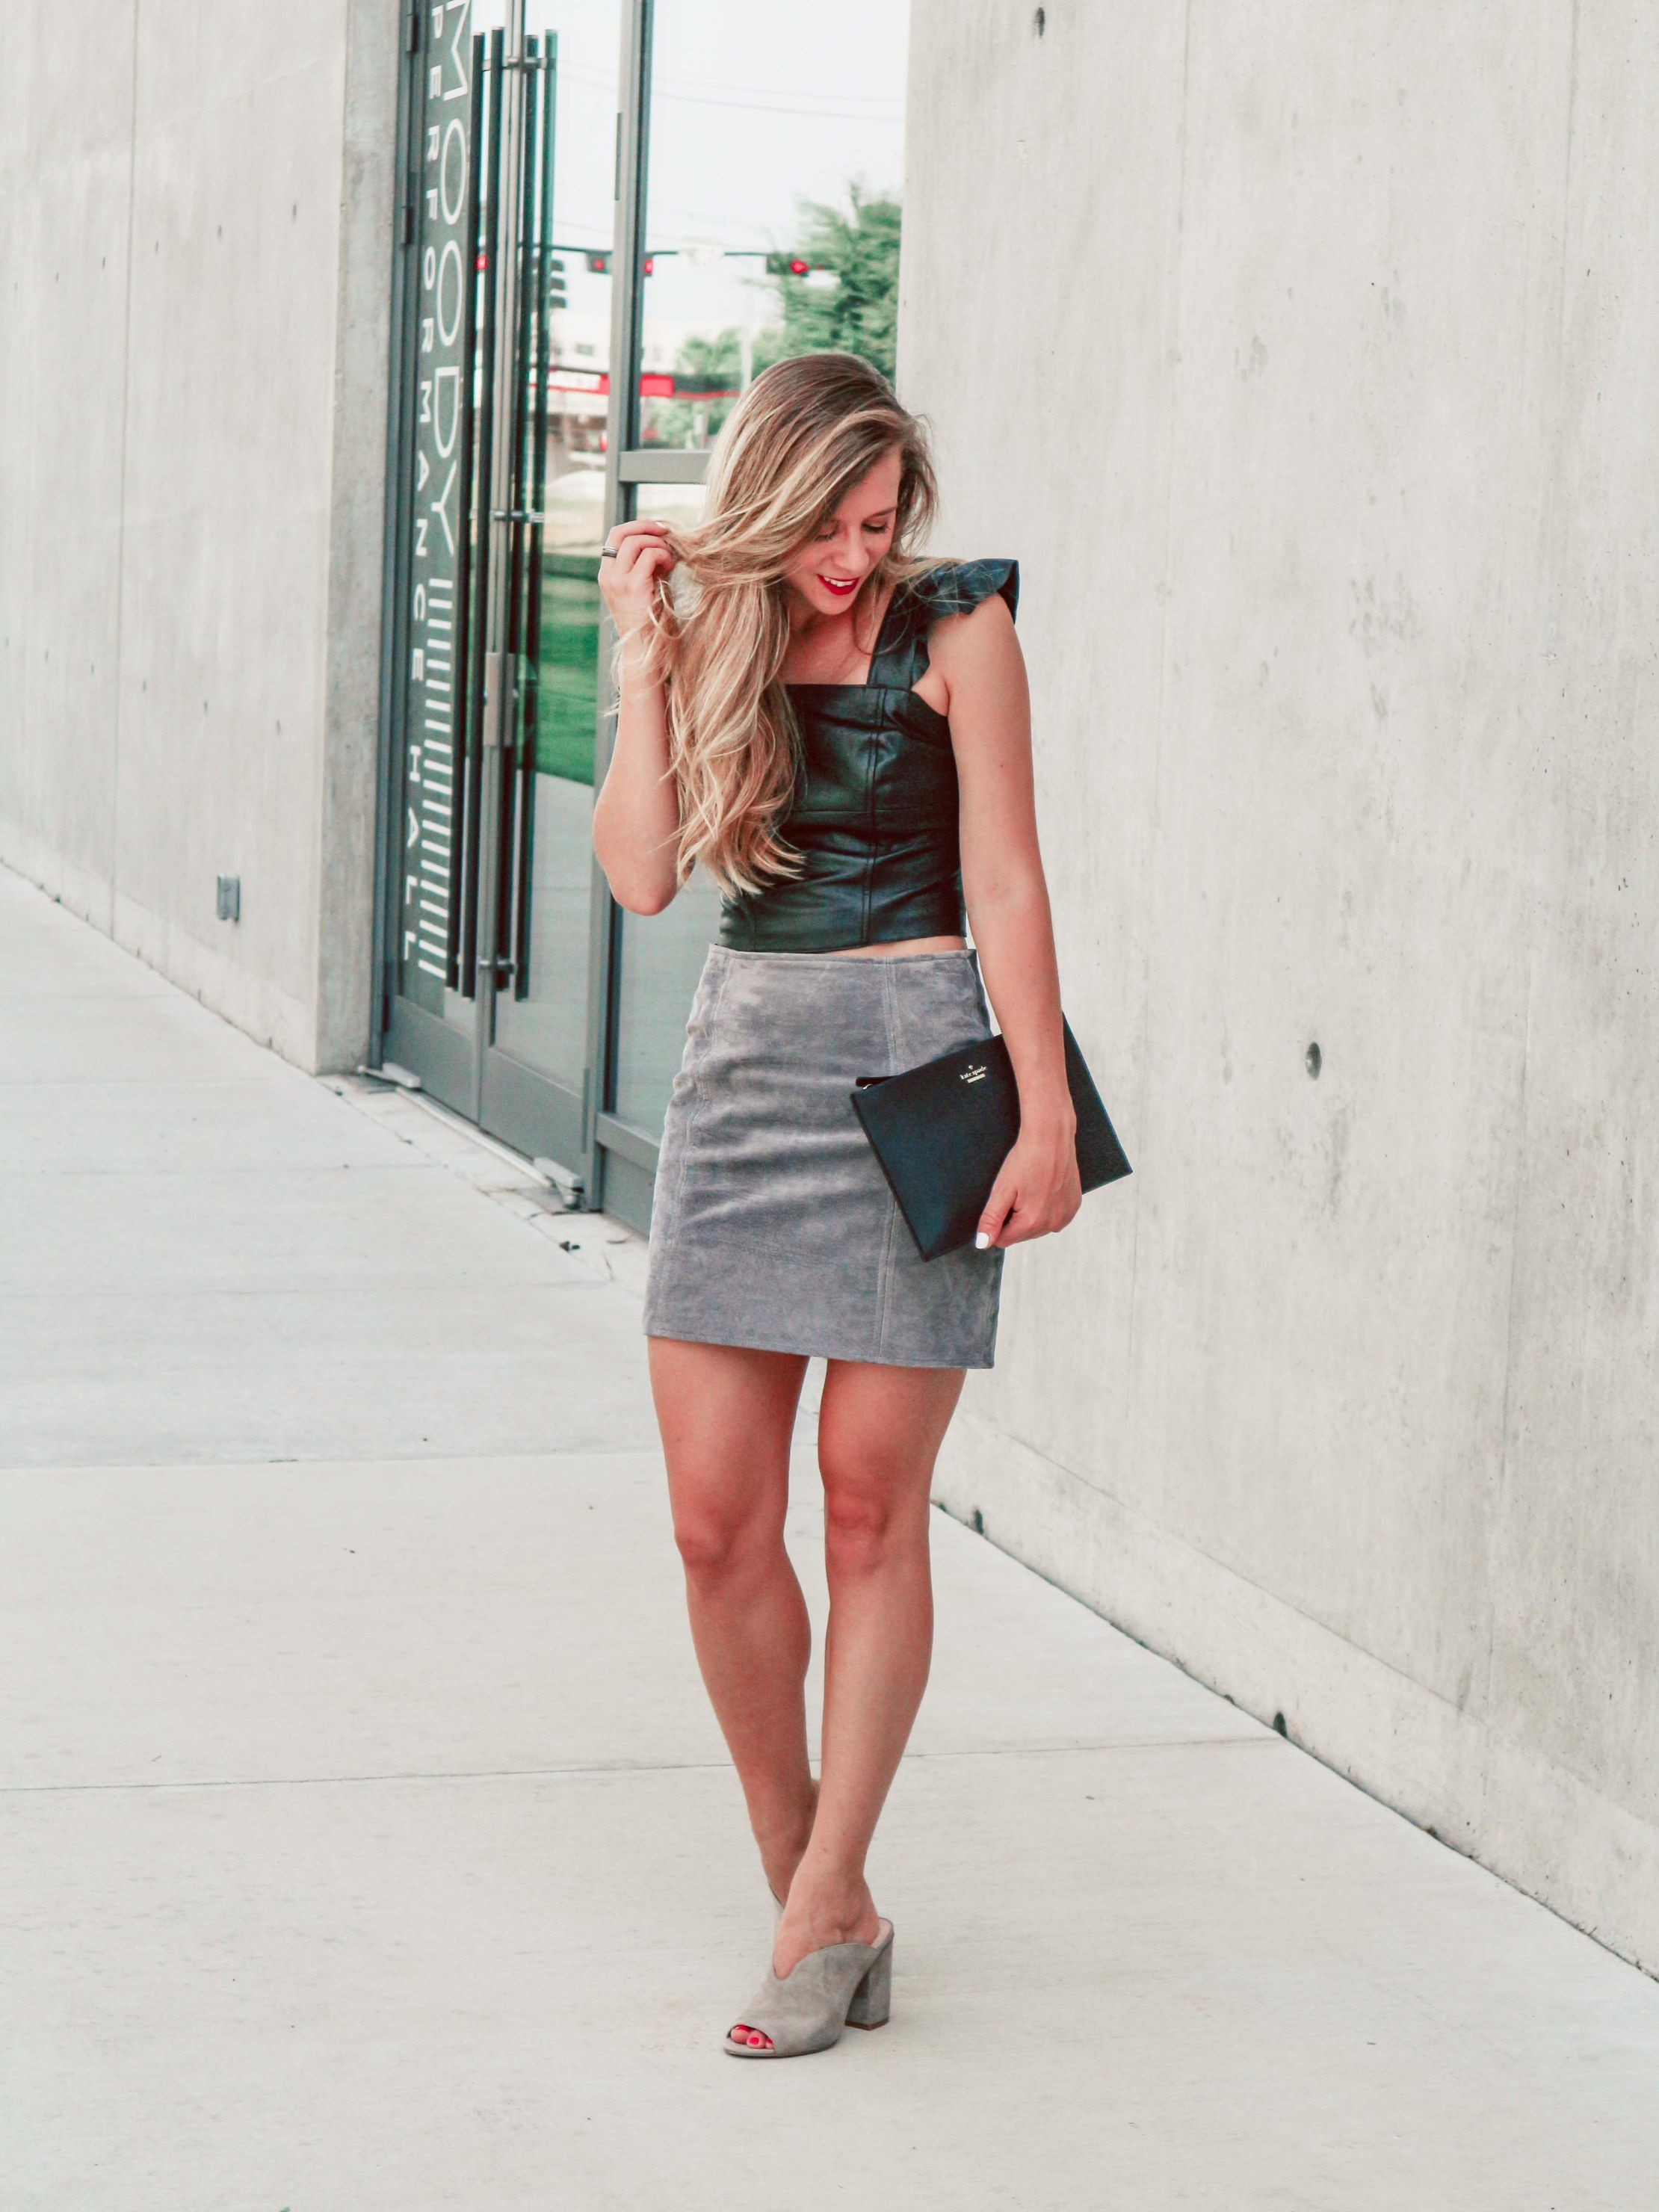 3f3f664e4 Nordstrom Anniversary Sale Early Access 2018 | Running in Heels | gray suede  skirt | leather crop top with ruffle straps | BP mules in taupe | suede  mini ...